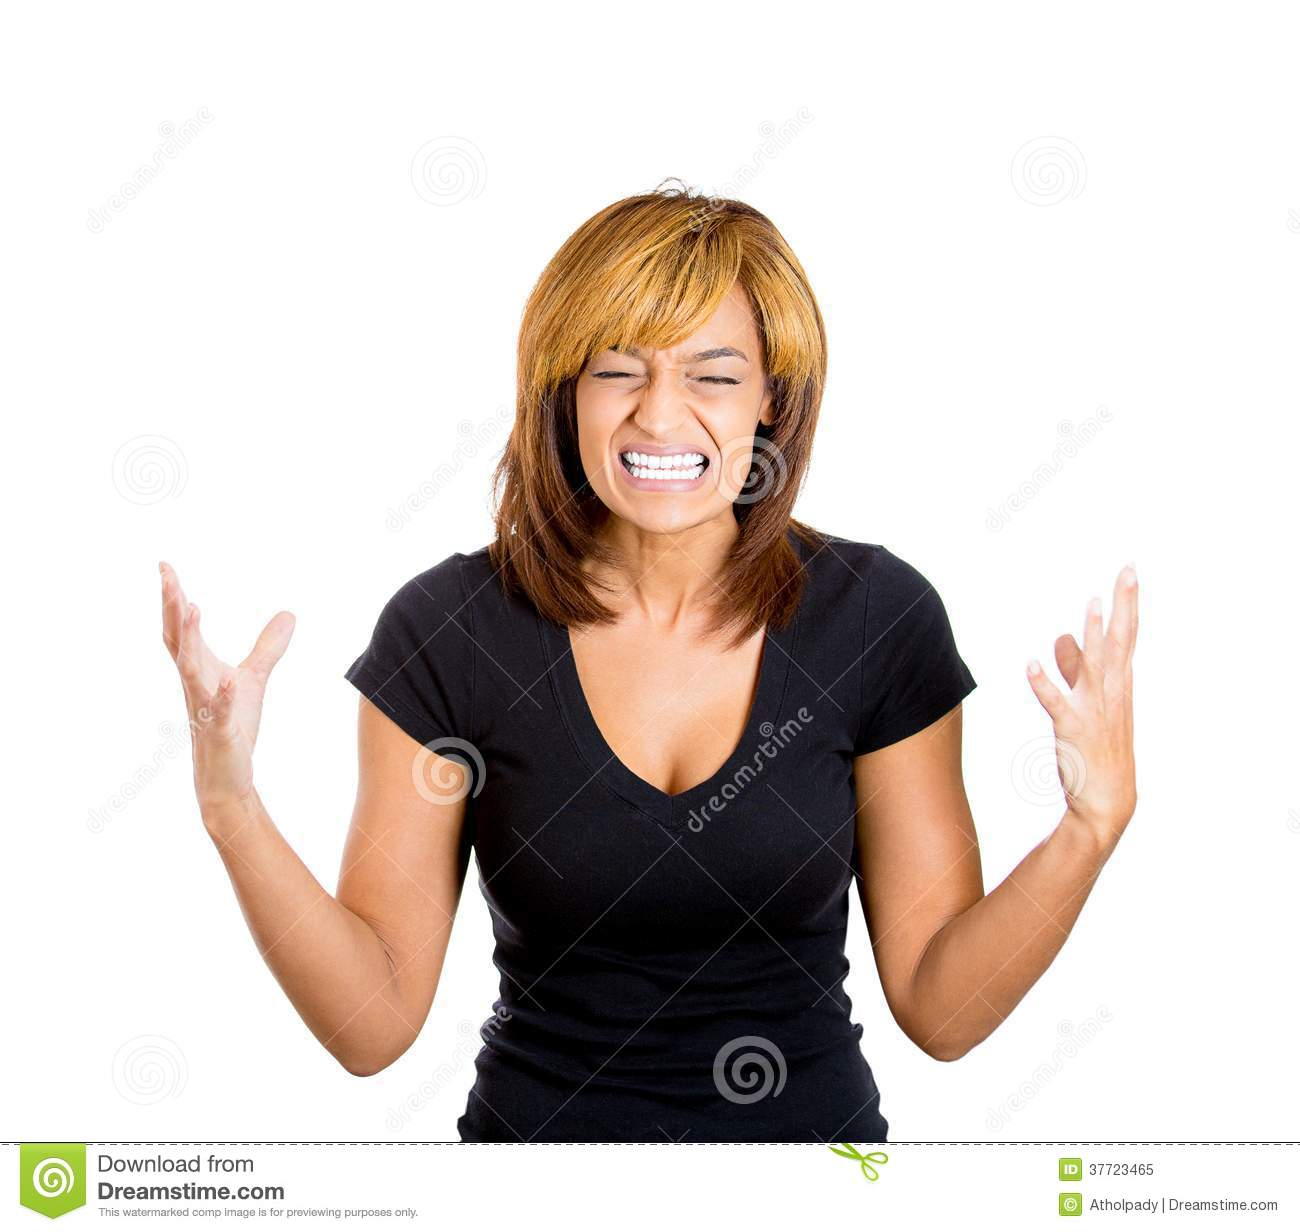 Angry Screaming Black Woman Upsed screaming woman Angry Black Woman Face